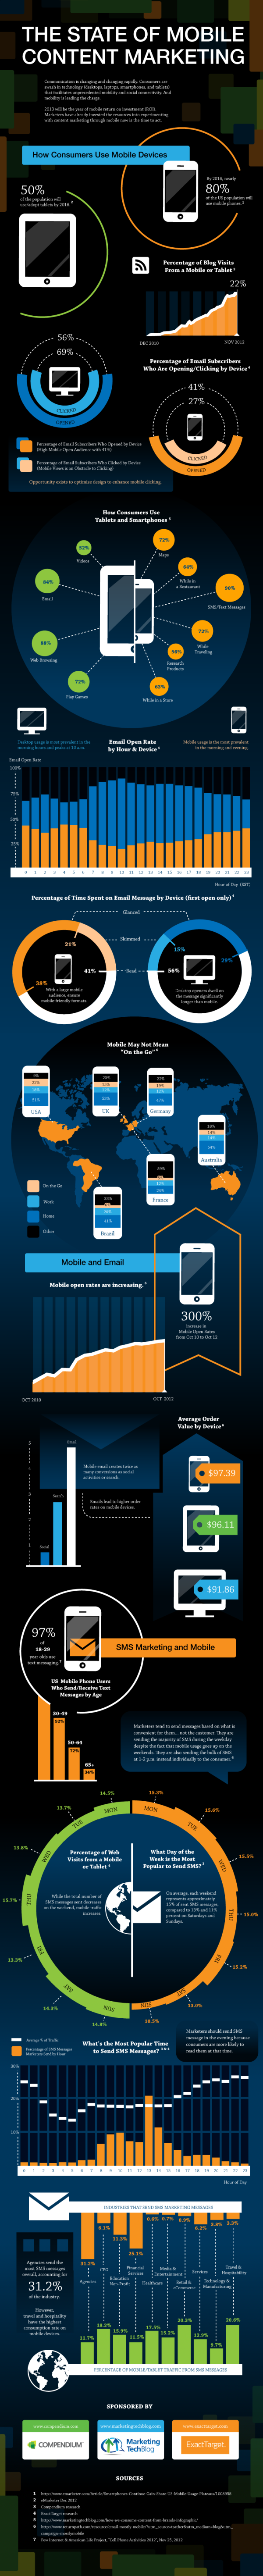 Mobile Content Marketing resized 600